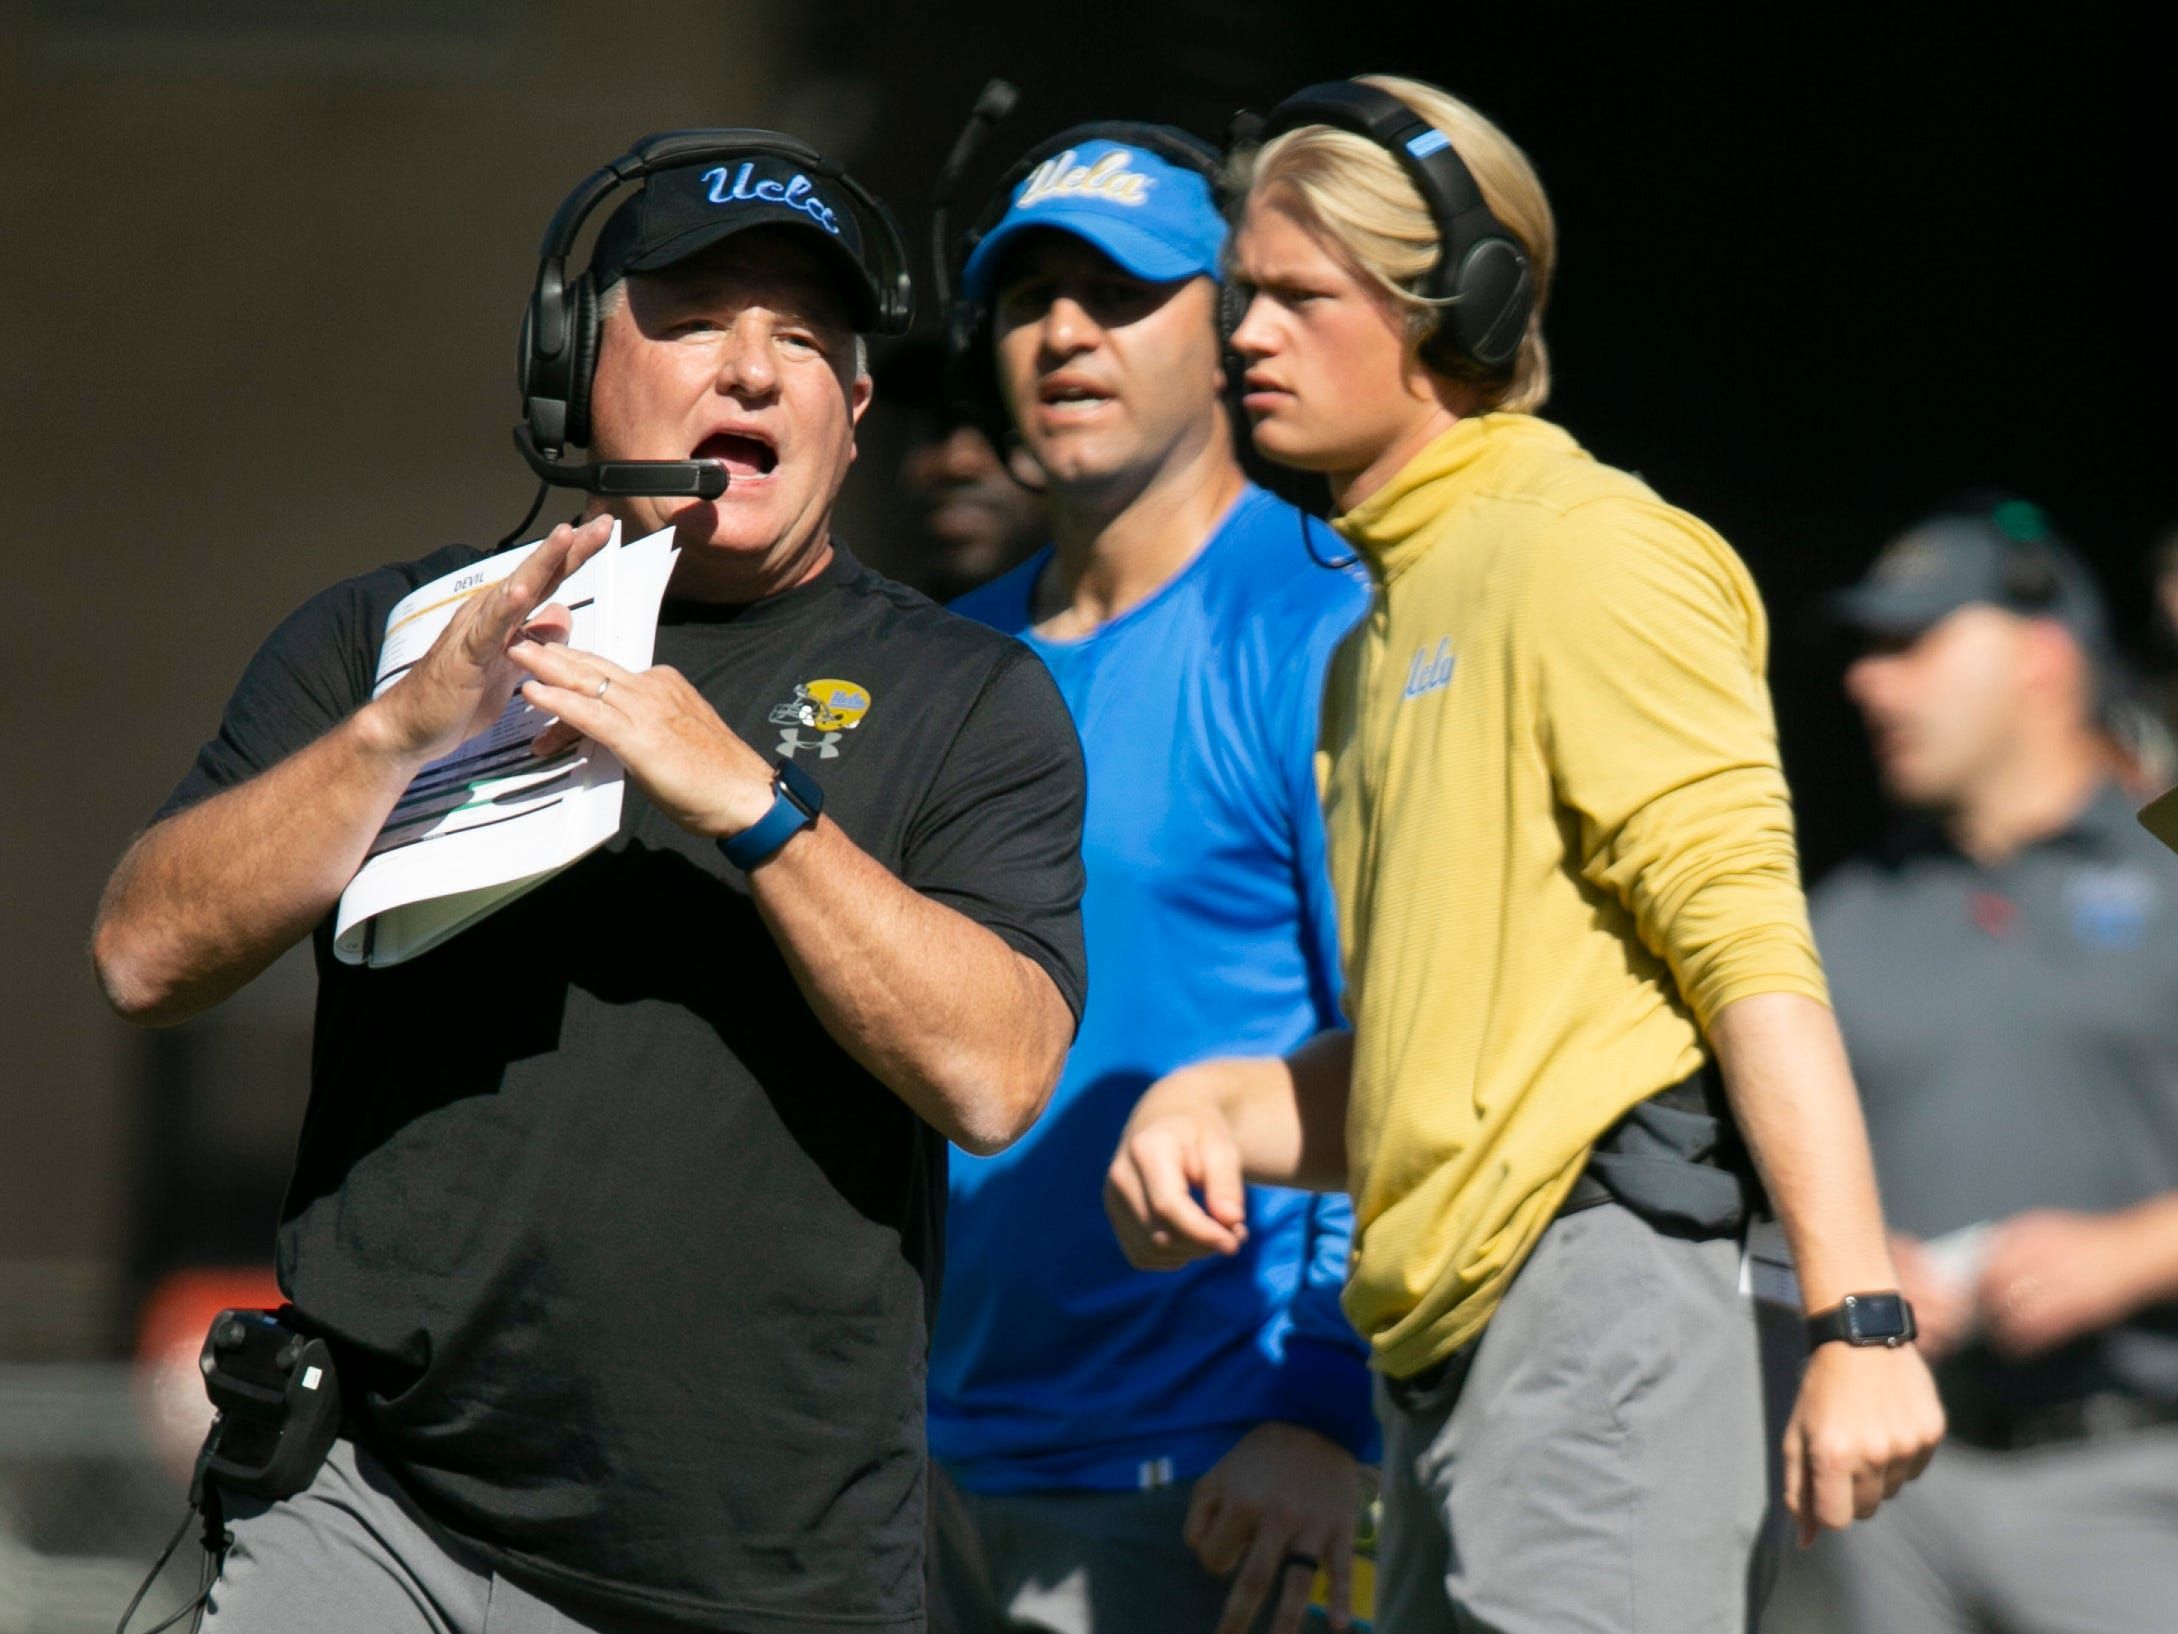 UCLA head coach Chip Kelly calls the timeout during the first quarter of the PAC-12 college football against Arizona State at Sun Devil Stadium in Tempe on Saturday, November 10, 2018.